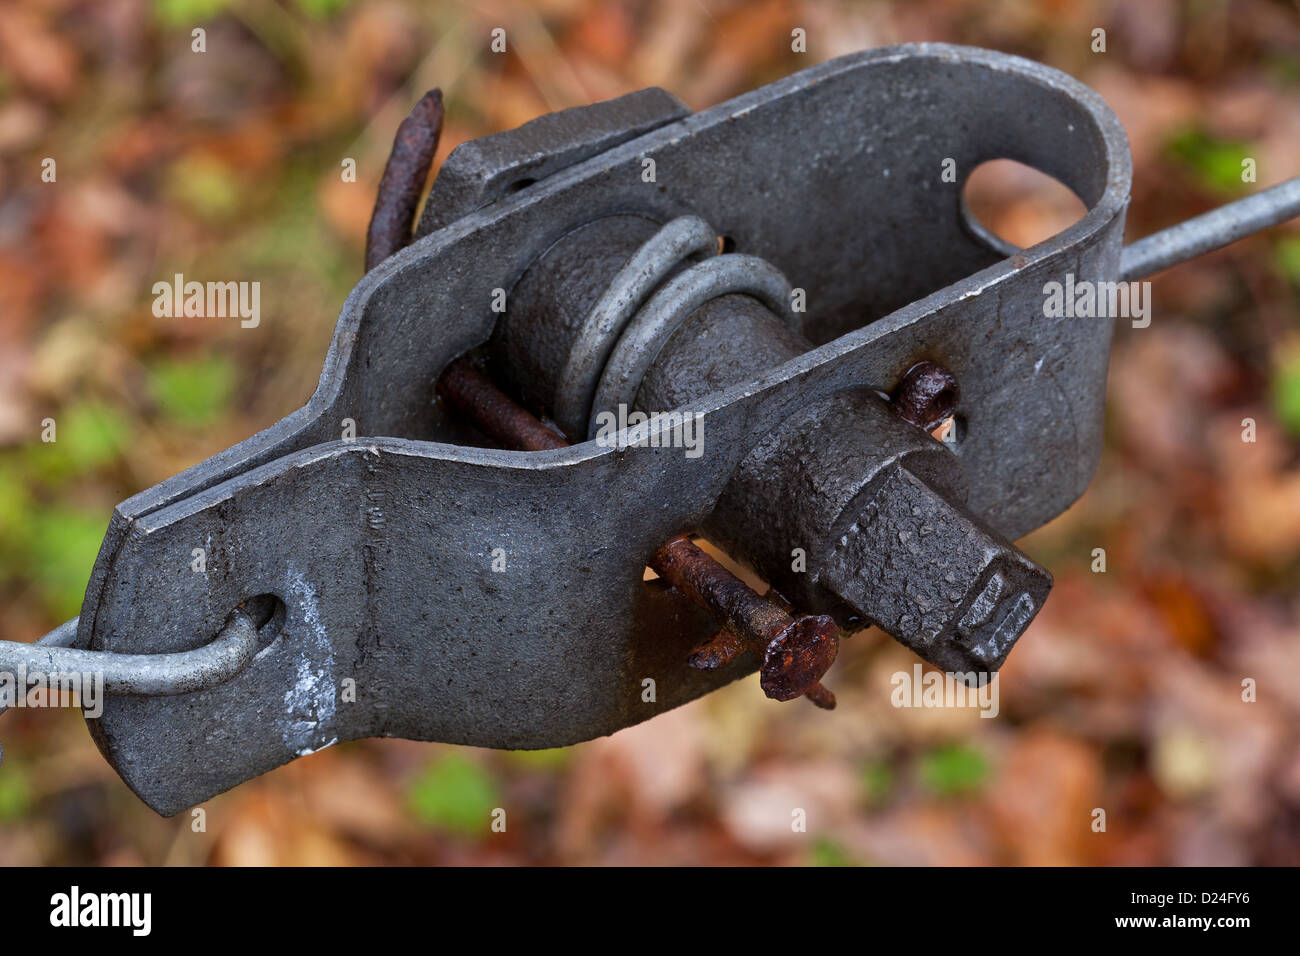 Wire Tensioner Stock Photos & Wire Tensioner Stock Images - Alamy